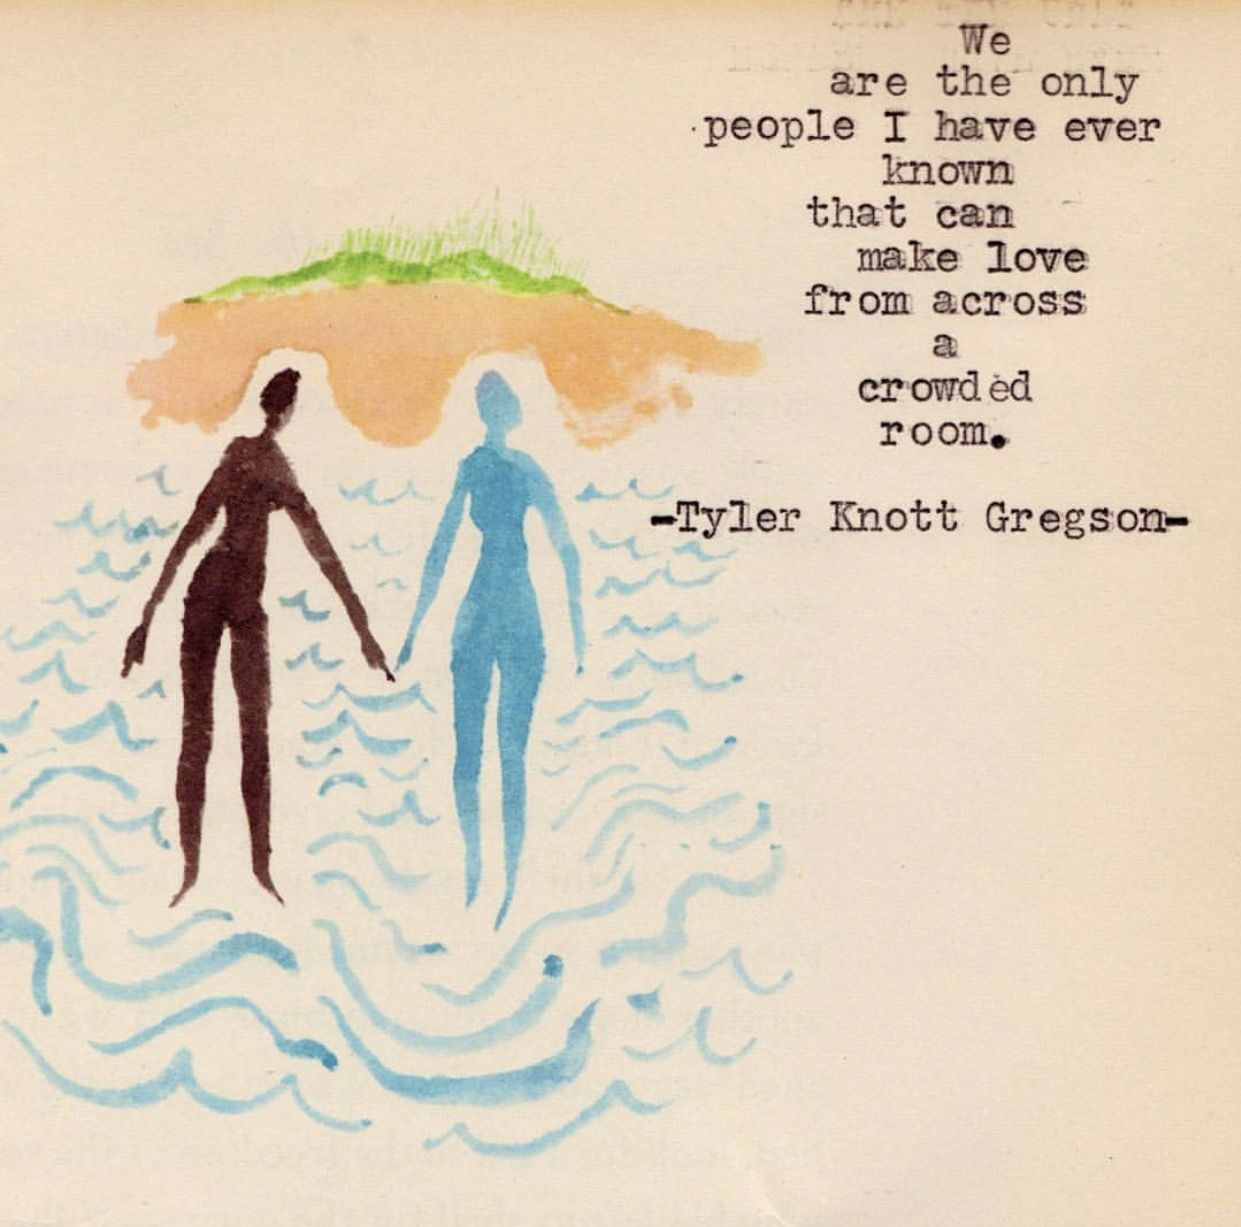 Making love from across the room with my soulmate Tyler Knott Gregson